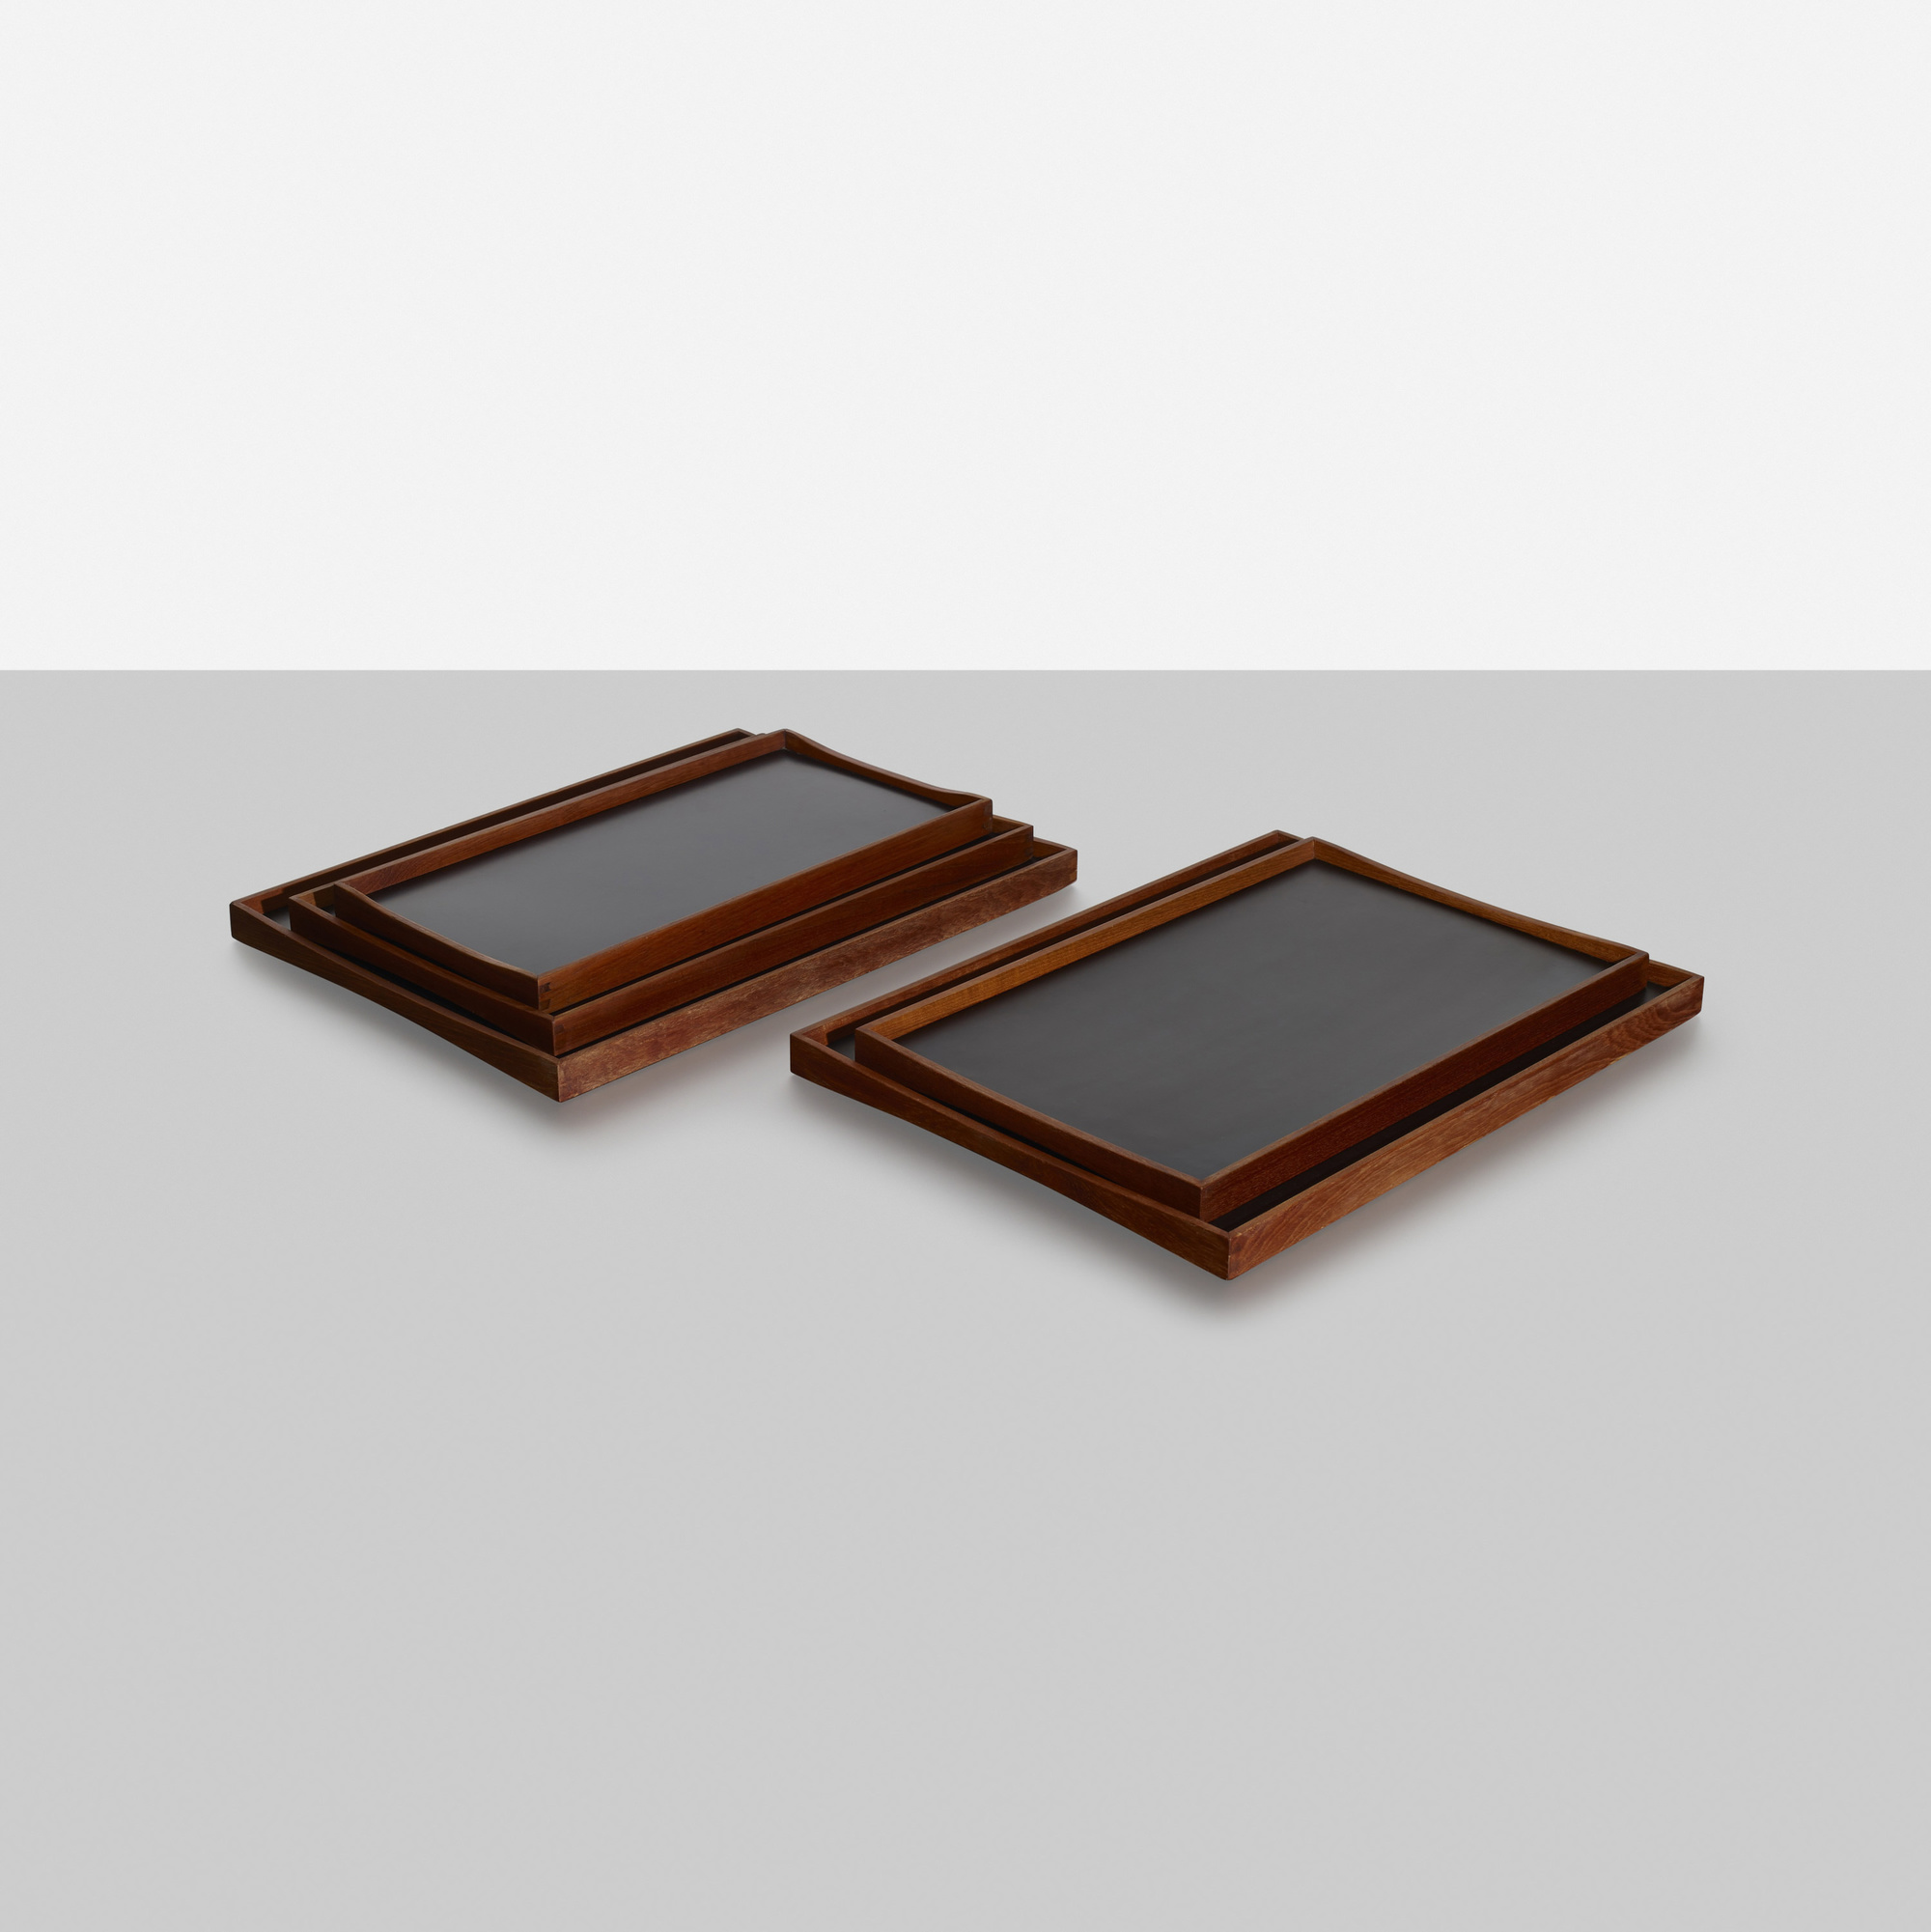 179: Finn Juhl / reversible trays, set of five (2 of 2)